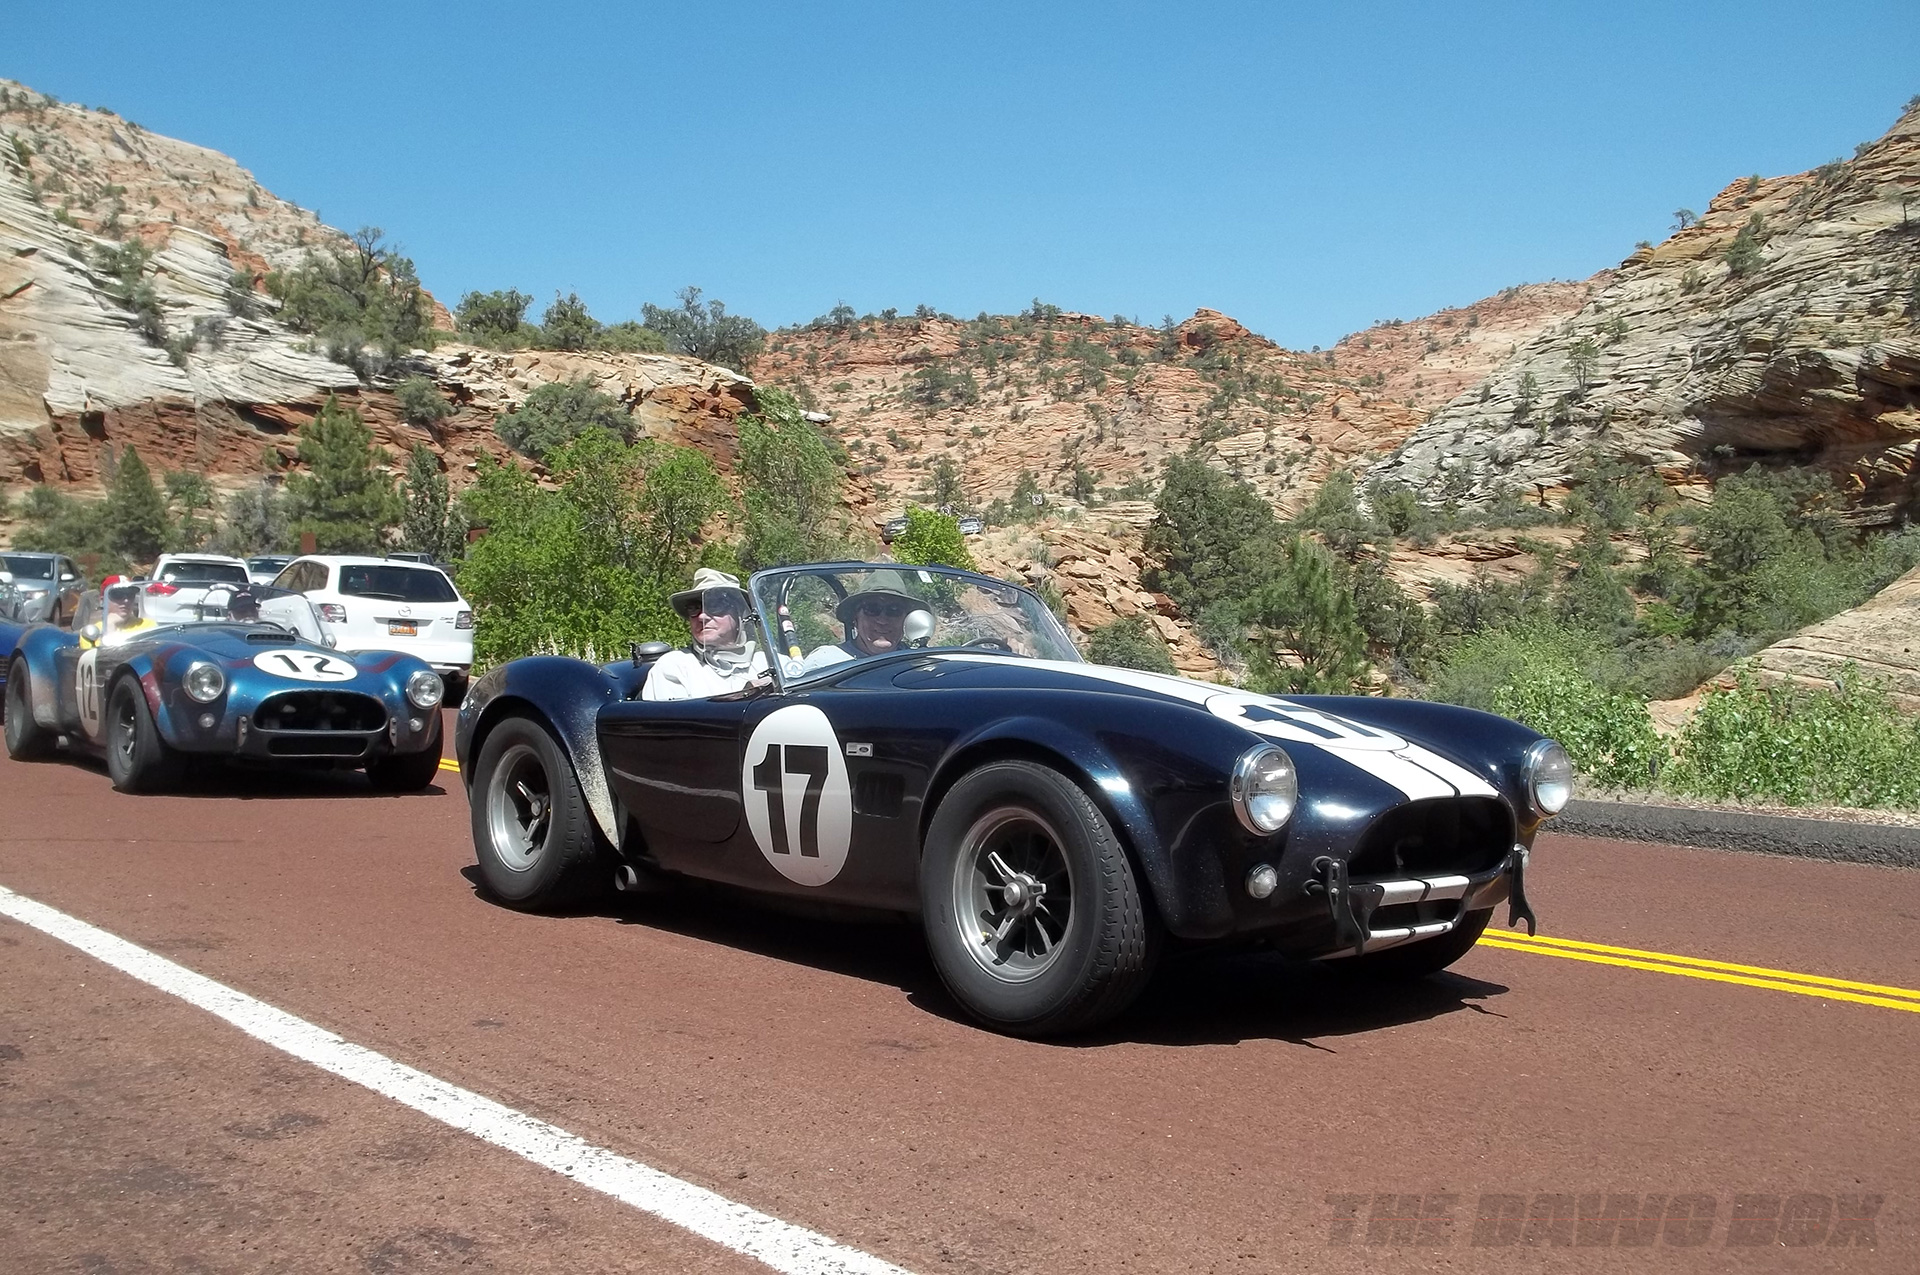 a black and blue Shelby AC Cobra on a scenic grand Canyon highway